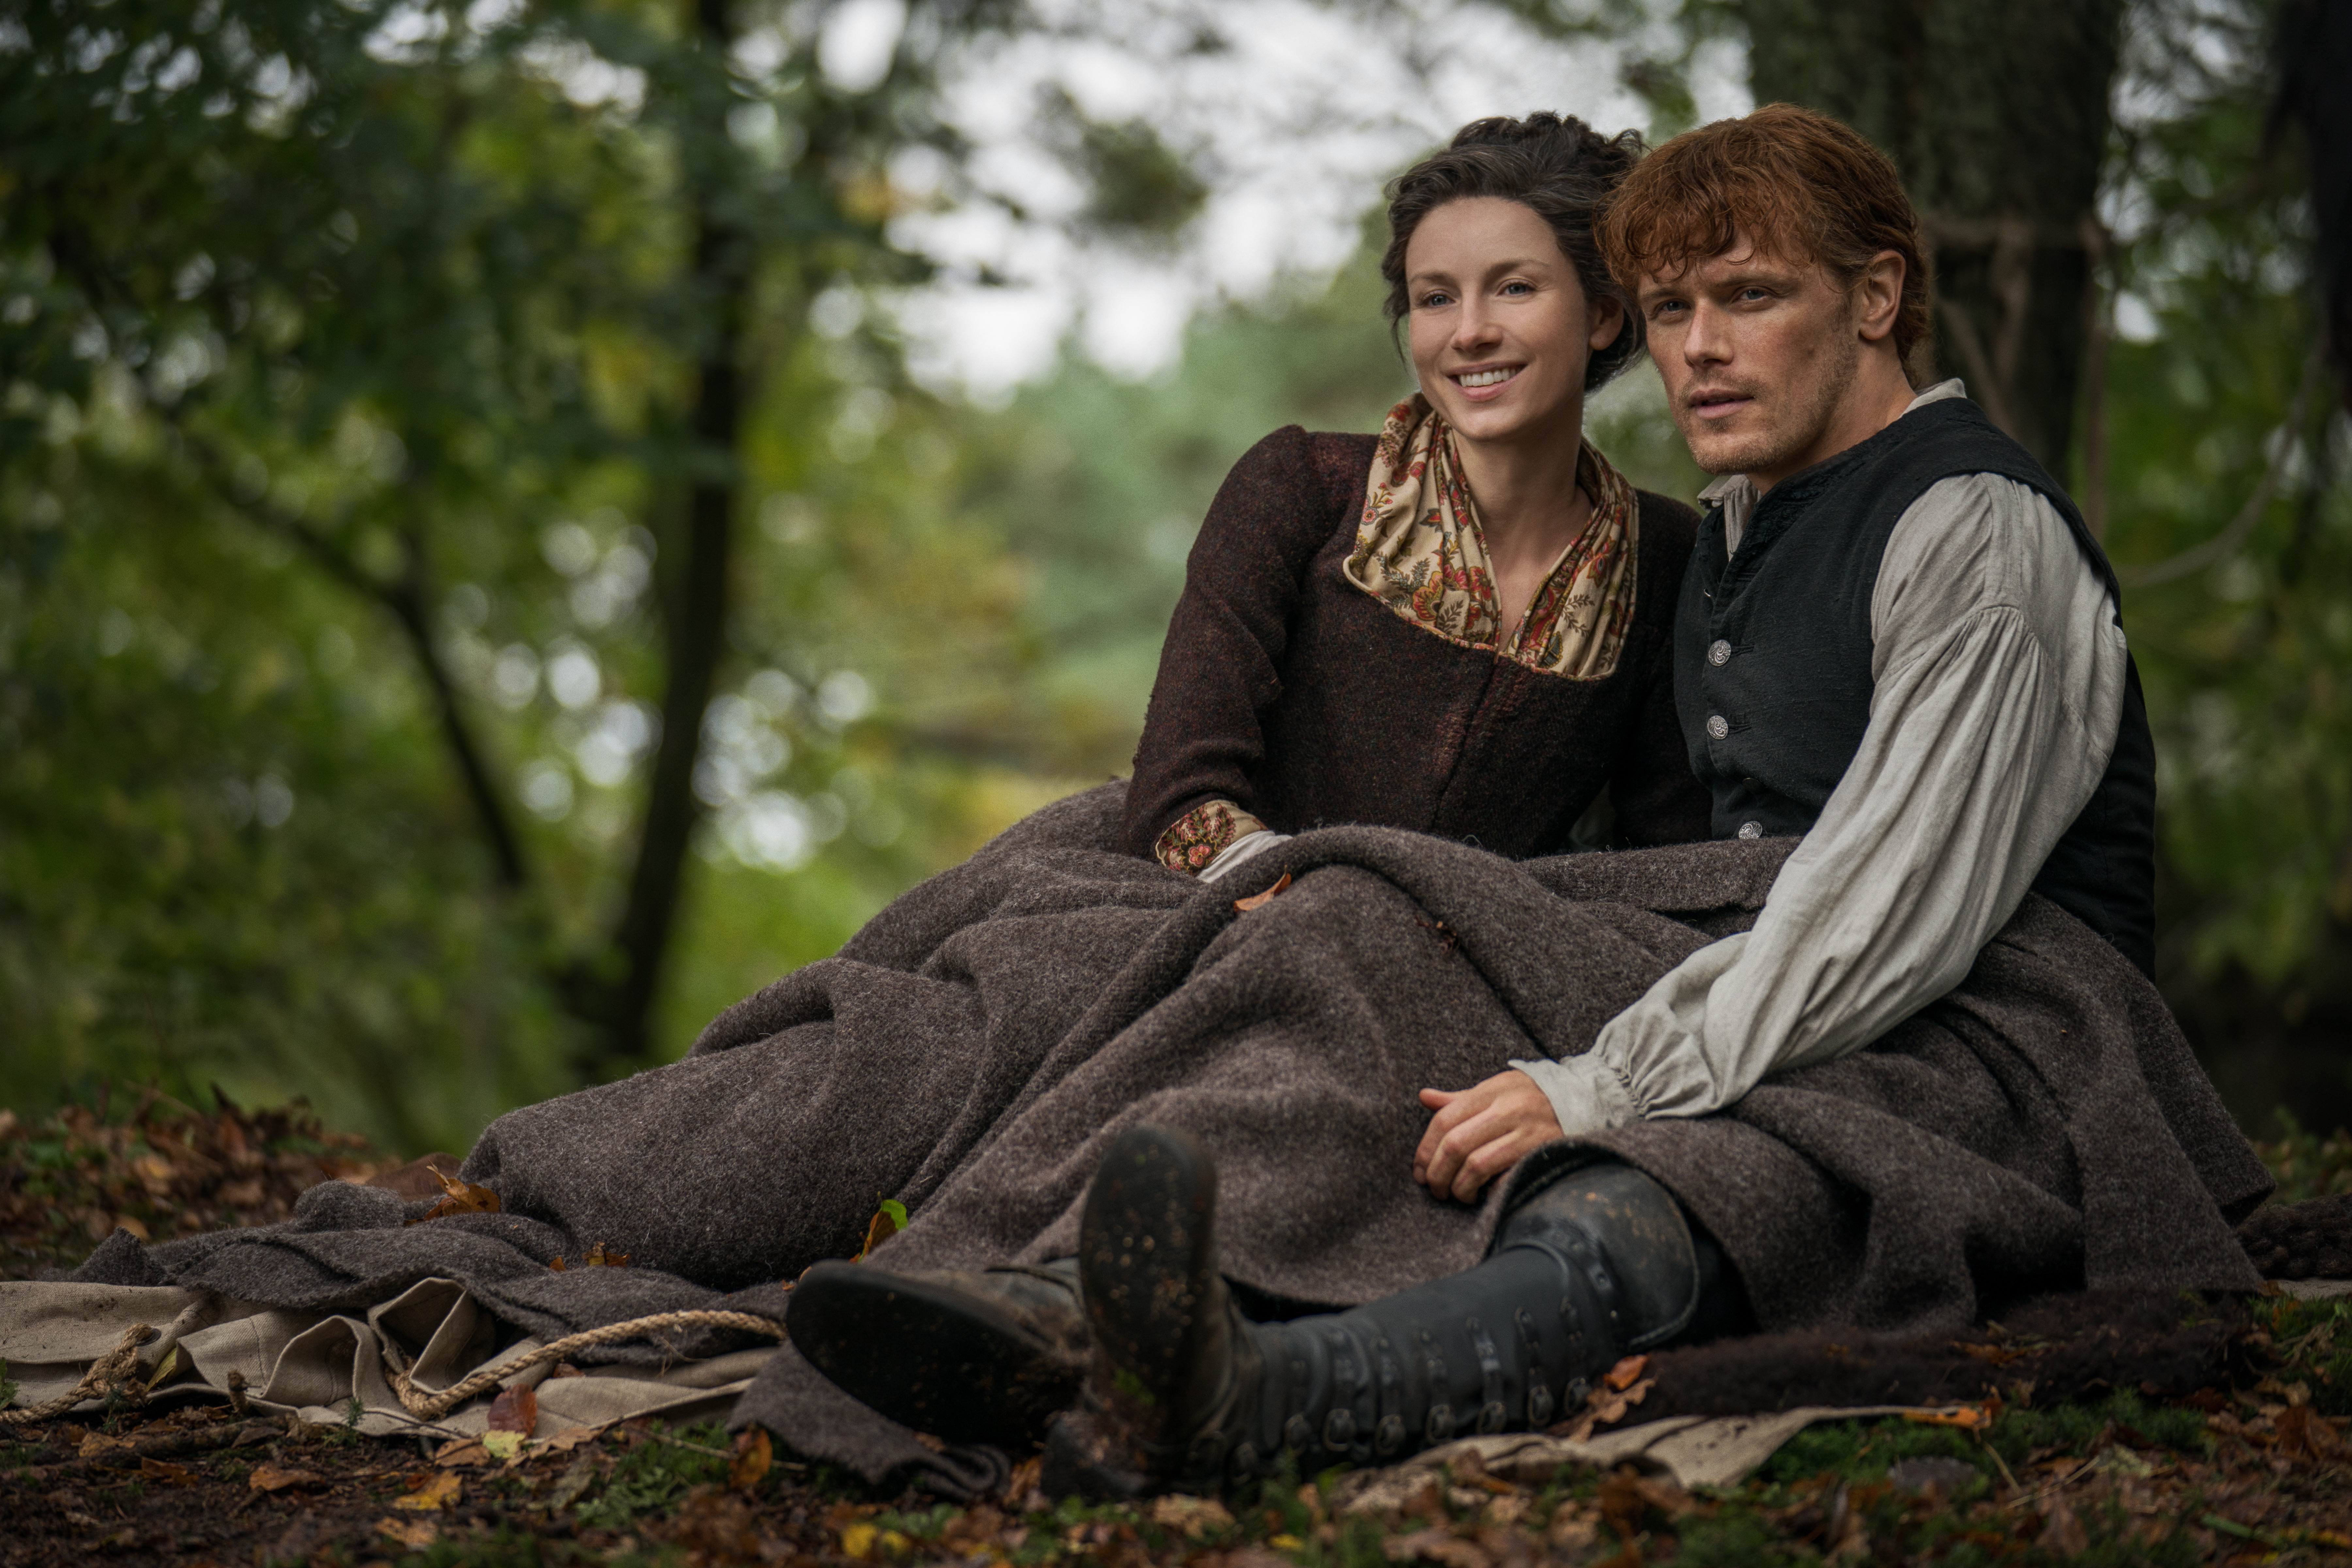 Outlander stars Caitriona Balfe and Sam Heughan will be attending the Scottish BAFTAs this weekend.